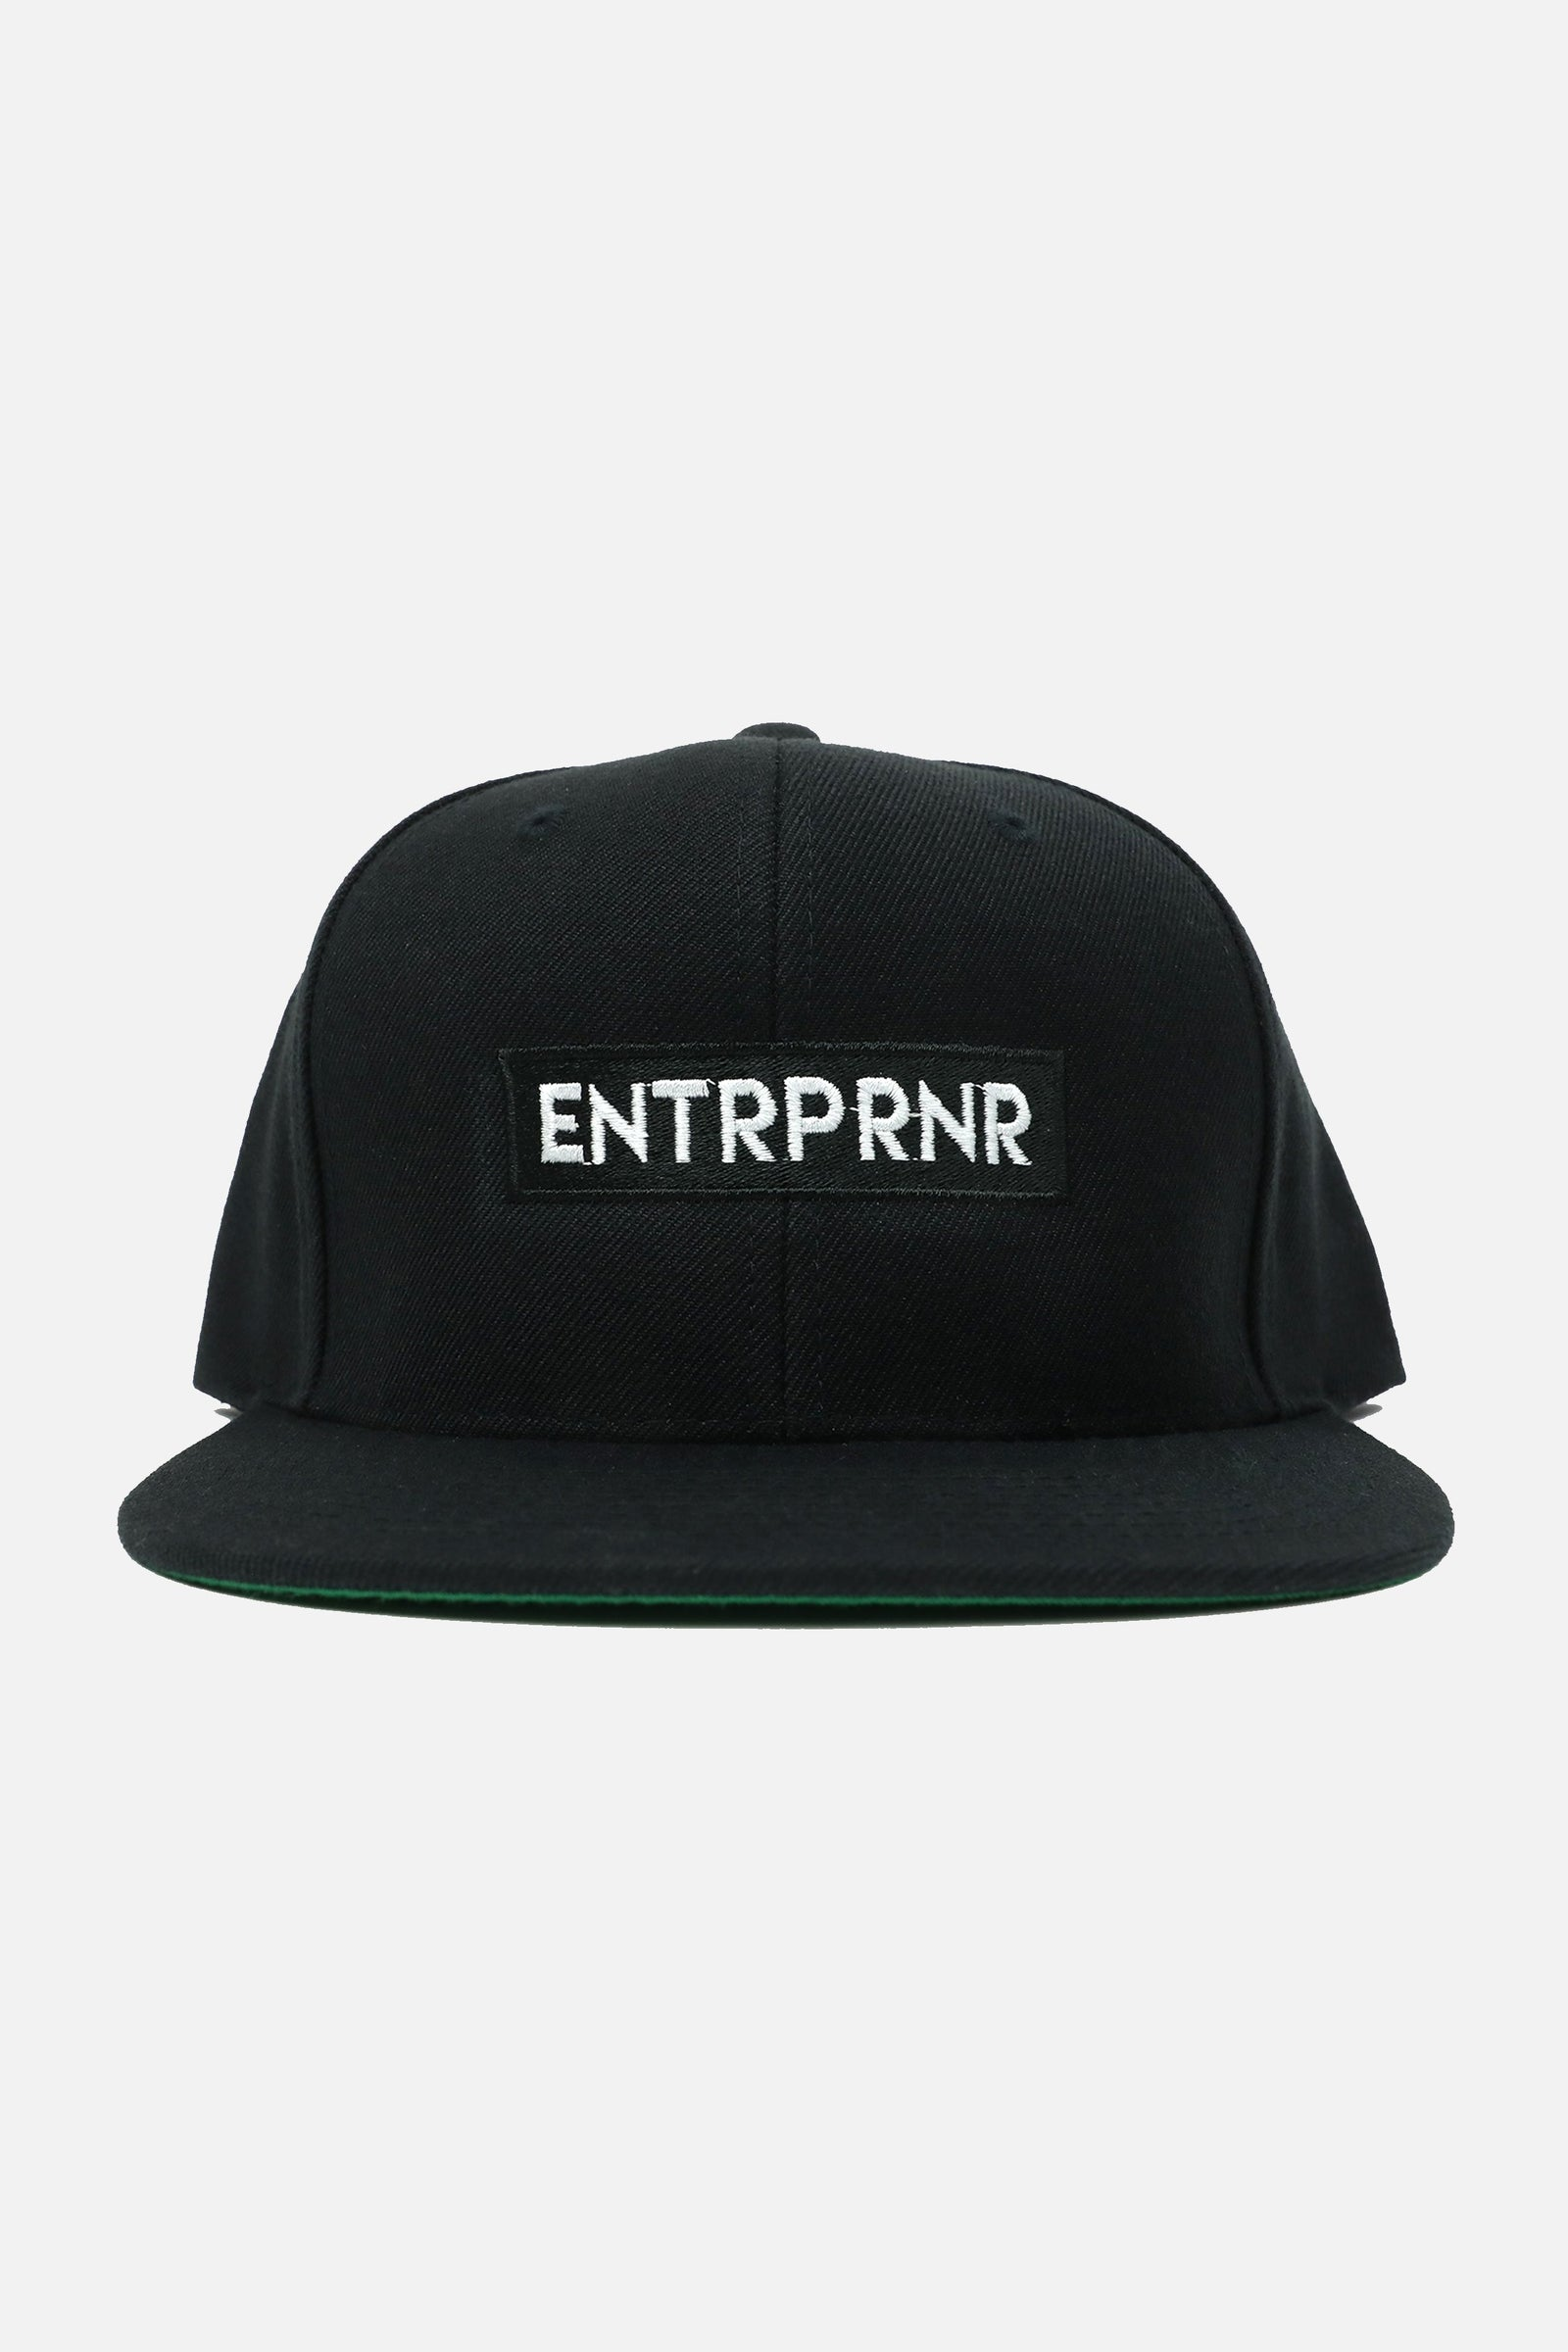 Classic ENTRPRNR Snapback - ENTRPRNR® | The Entrepreneur's Clothing Brand. | Stagnancy is the Enemy. Action is King.